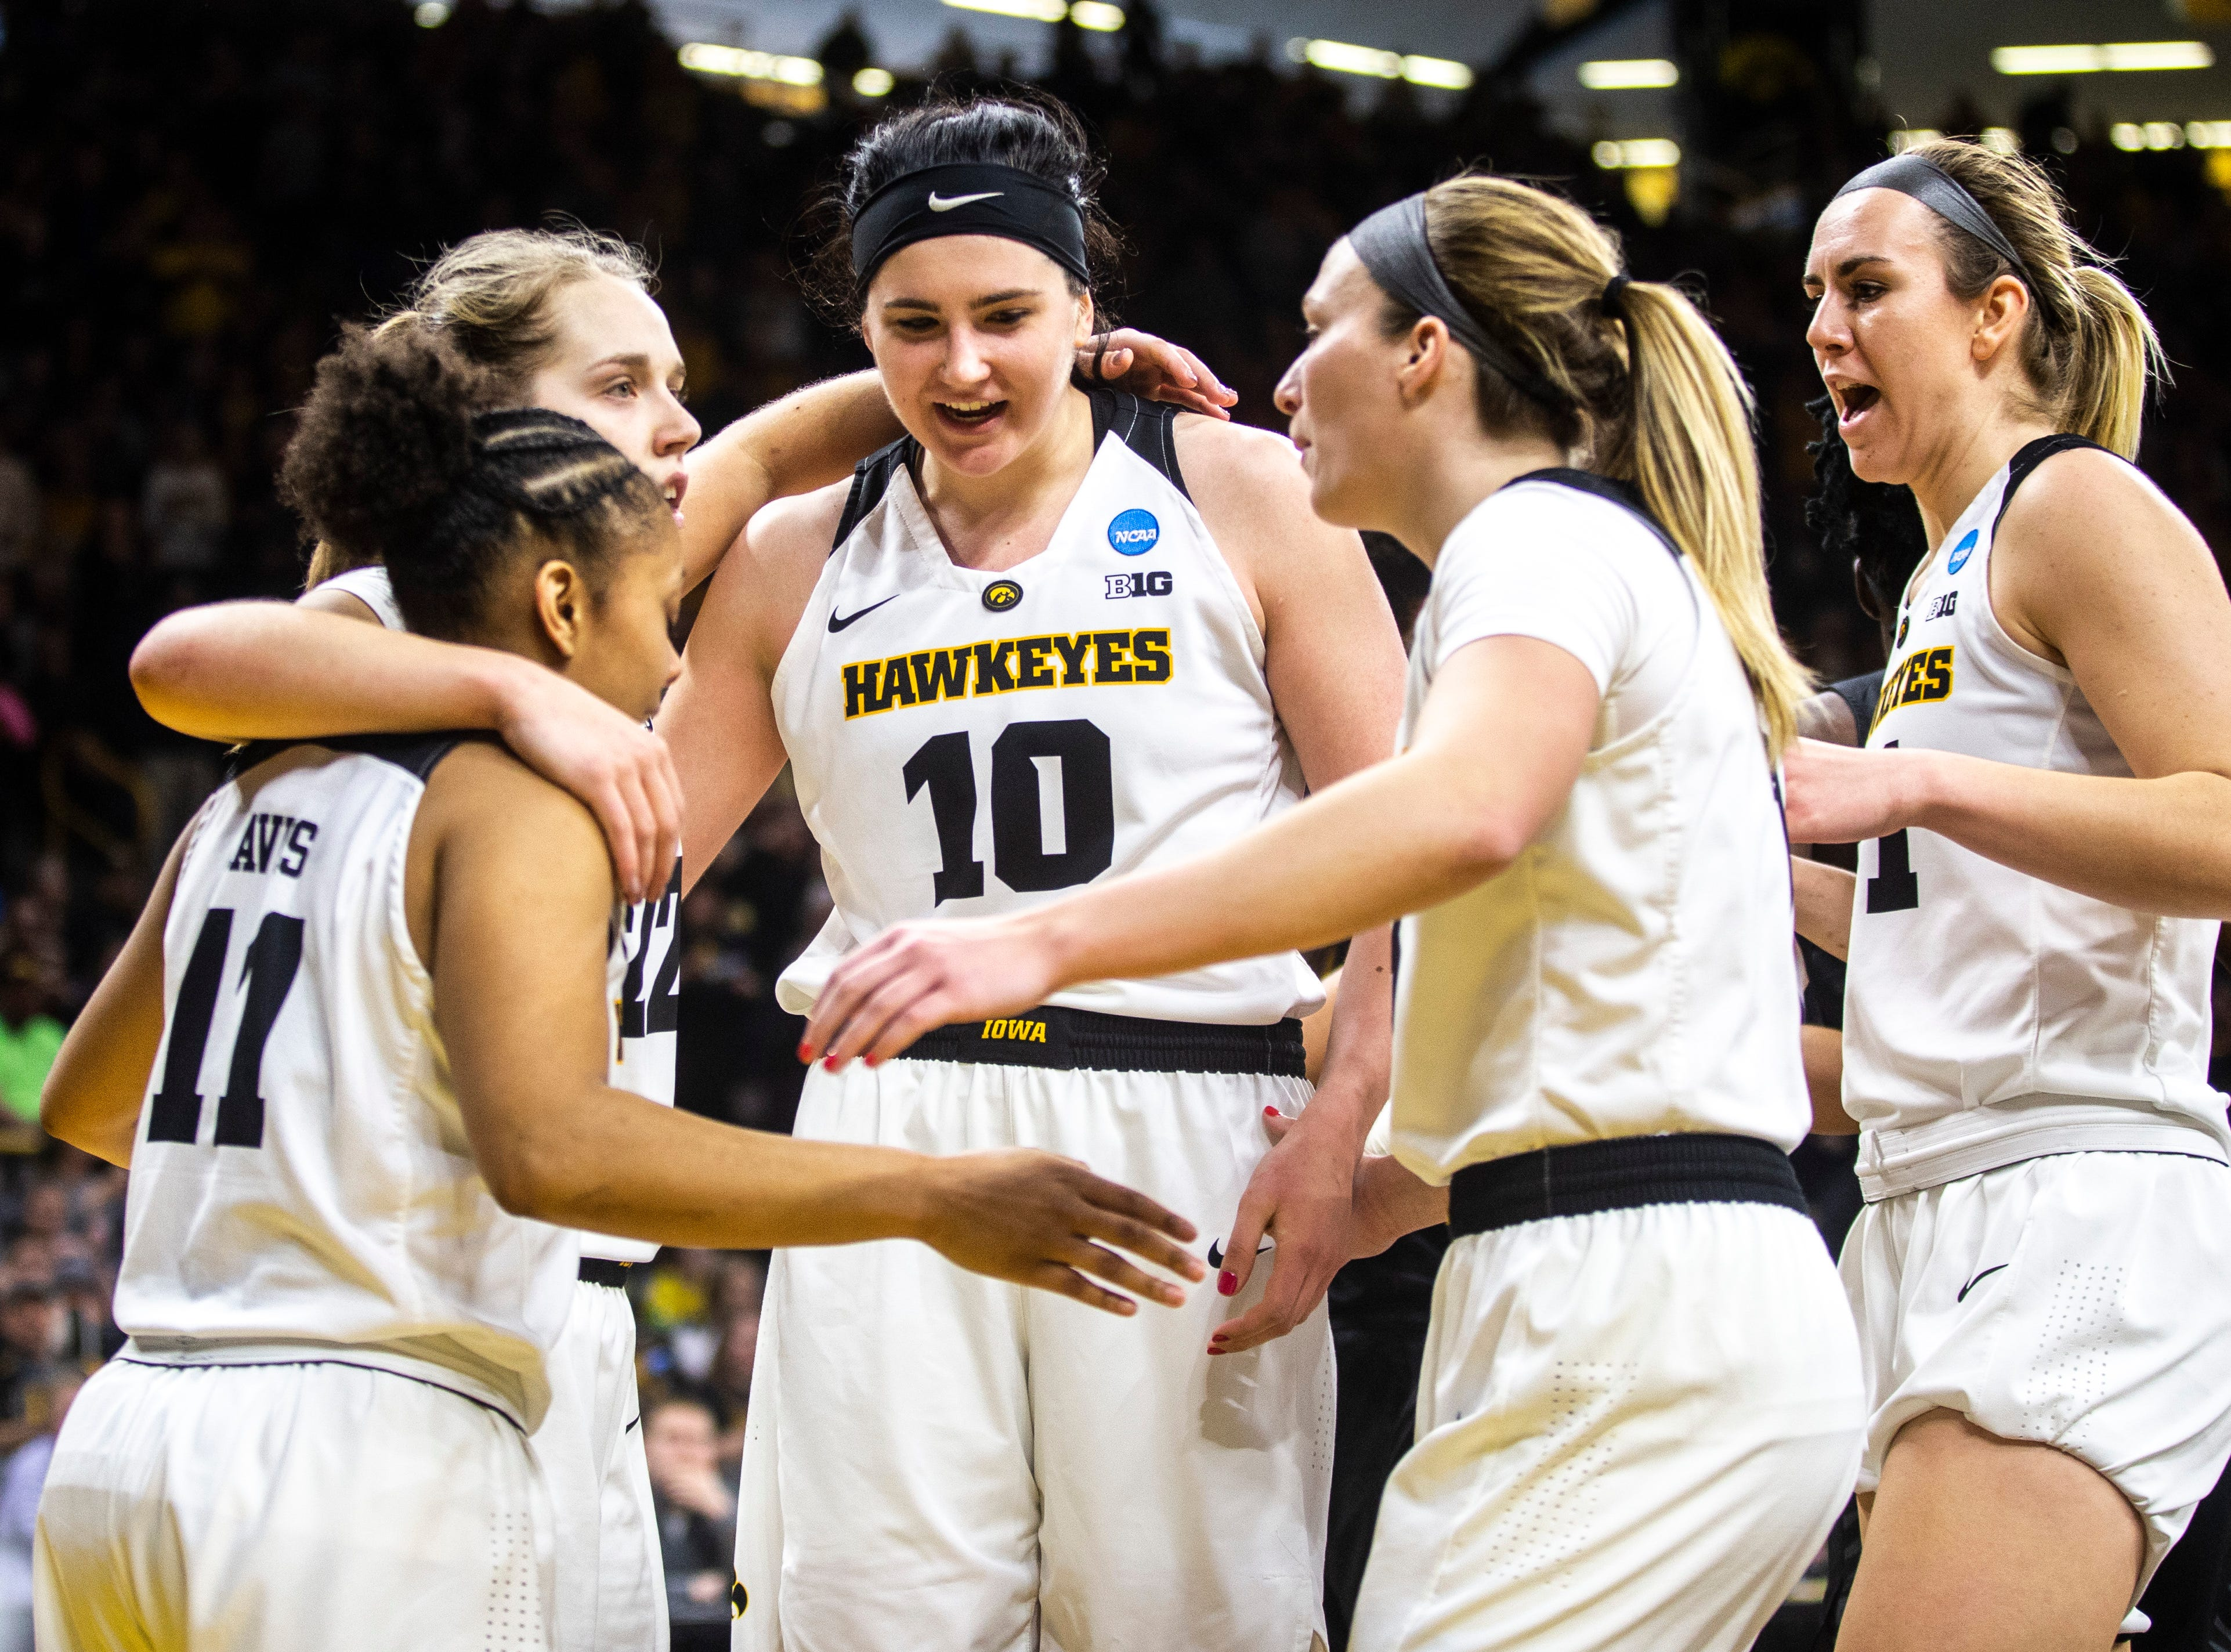 Iowa center Megan Gustafson (10) huddles with teammates  during a NCAA women's basketball tournament second-round game, Sunday, March 24, 2019, at Carver-Hawkeye Arena in Iowa City, Iowa.